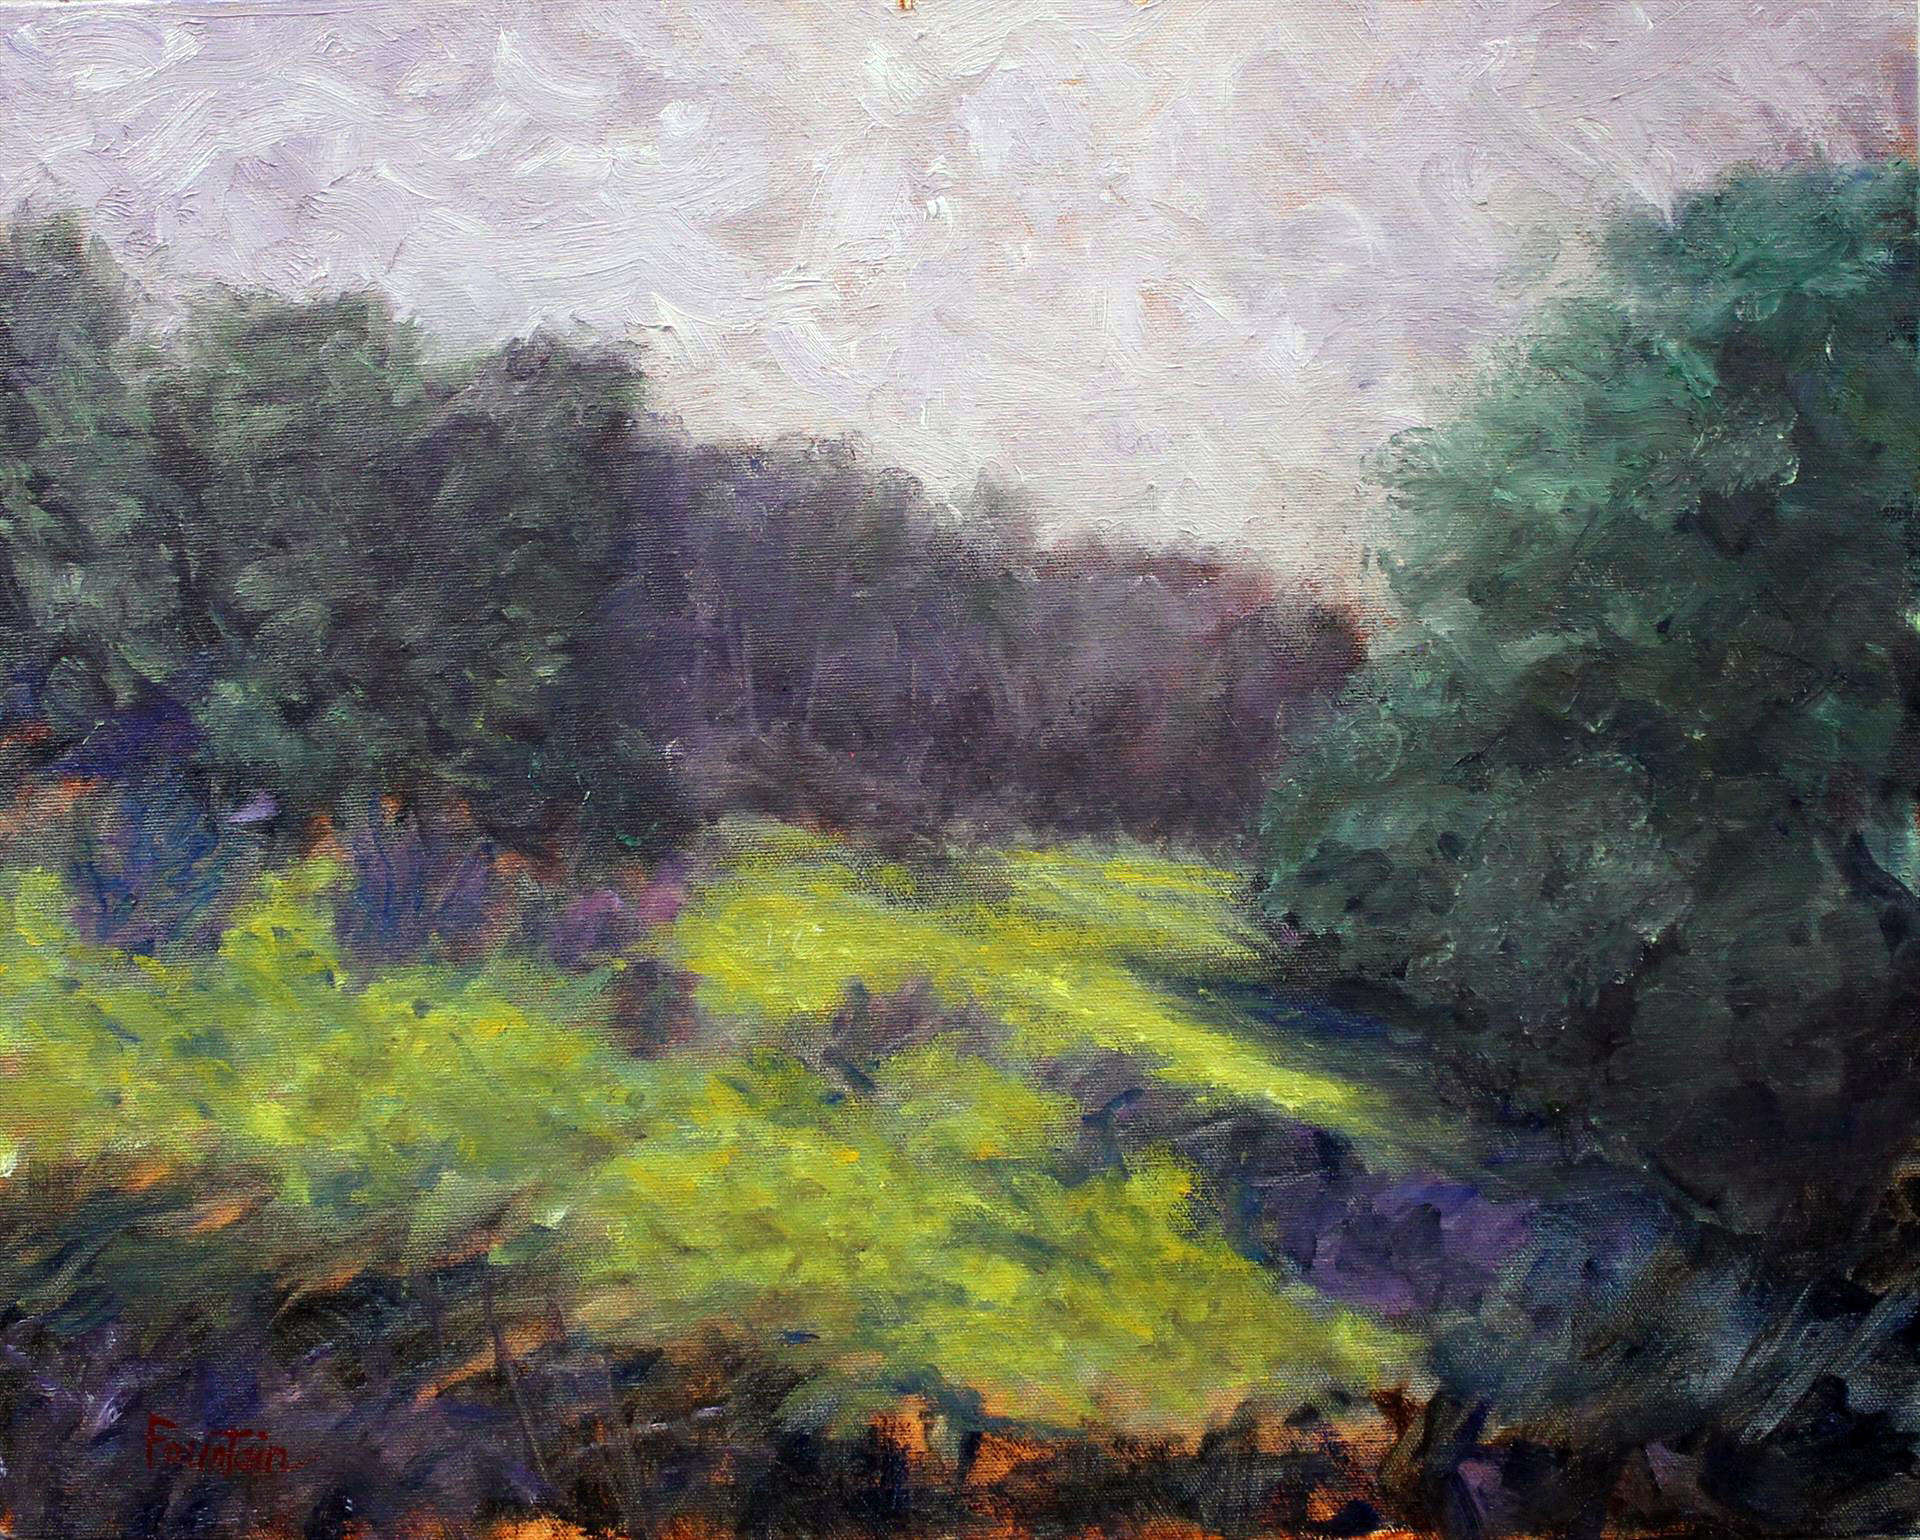 Steve Fountain | WETMORE TRAILHEAD, CUYAHOGA VALLEY NATIONAL PARK | oil | frame size 22x26